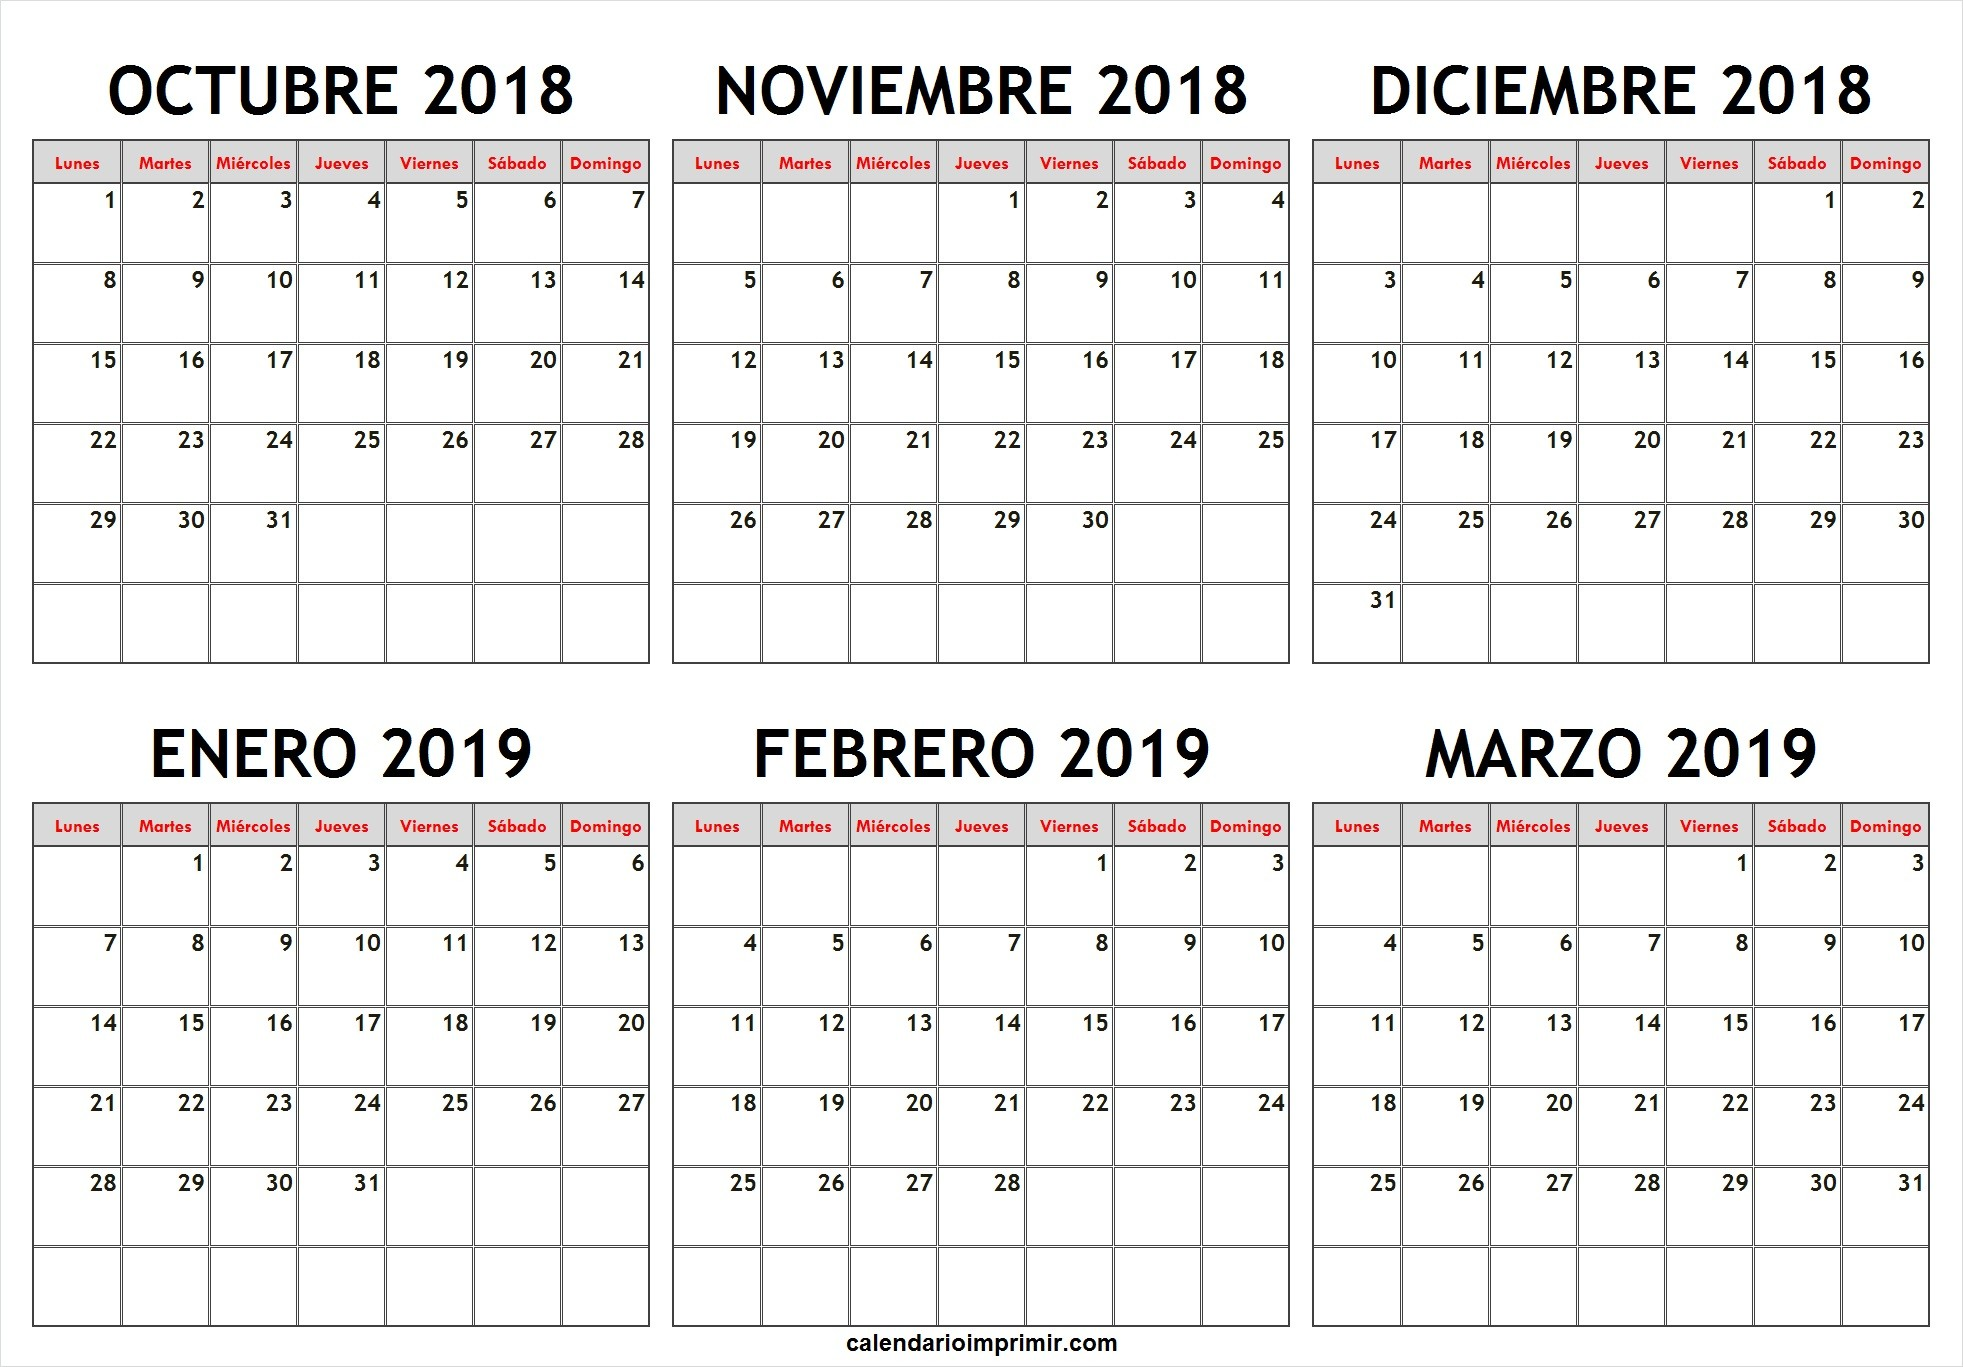 Calendario Agosto 2019-2020 Más Recientemente Liberado Calendario Febrero 2019 63ld Calendario Calendar March Of Calendario Agosto 2019-2020 Más Recientemente Liberado Calendario Febrero 2019 63ld Calendario Calendar March